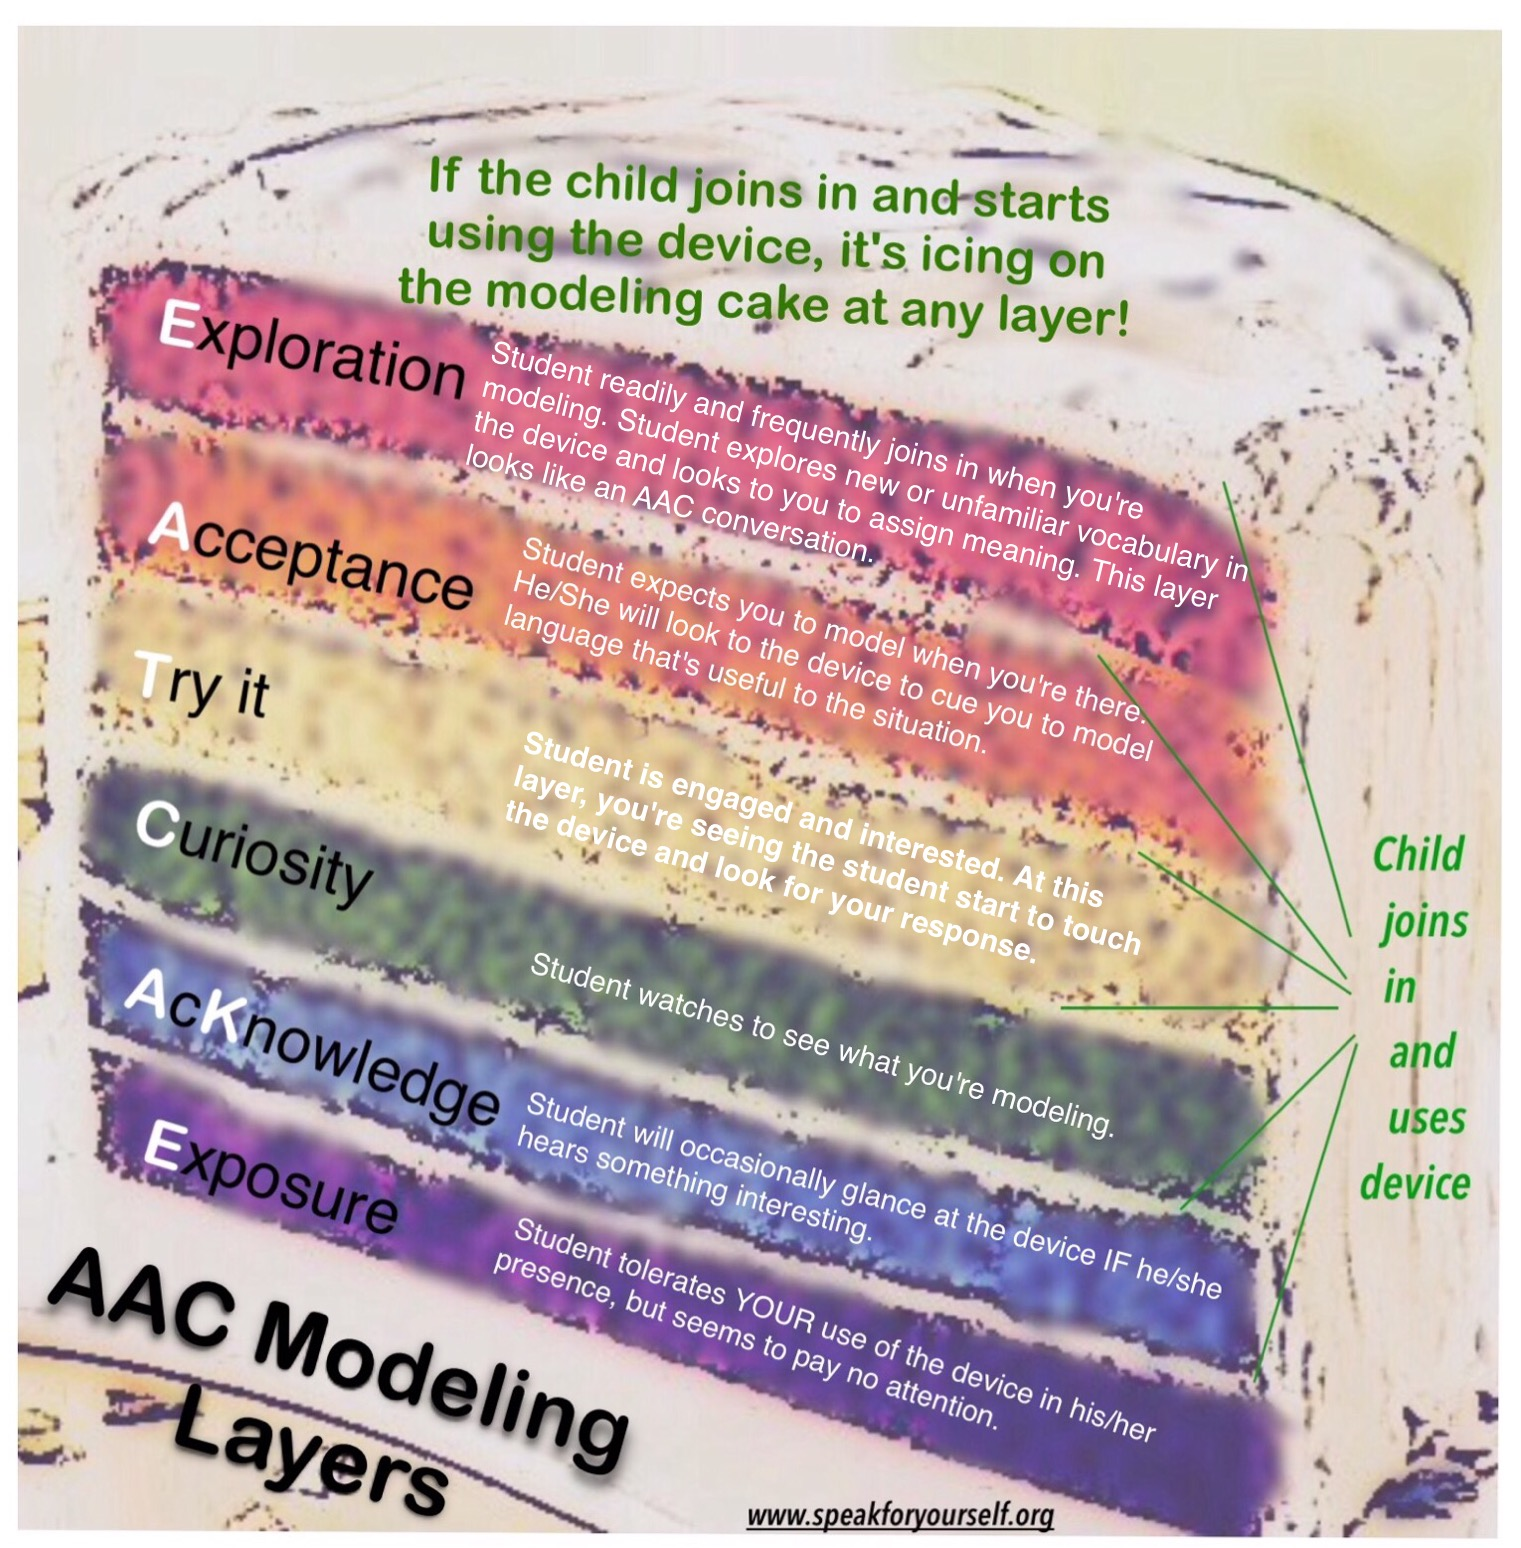 AAC Modeling Part 2: Layers of Modeling Engagement - Speak